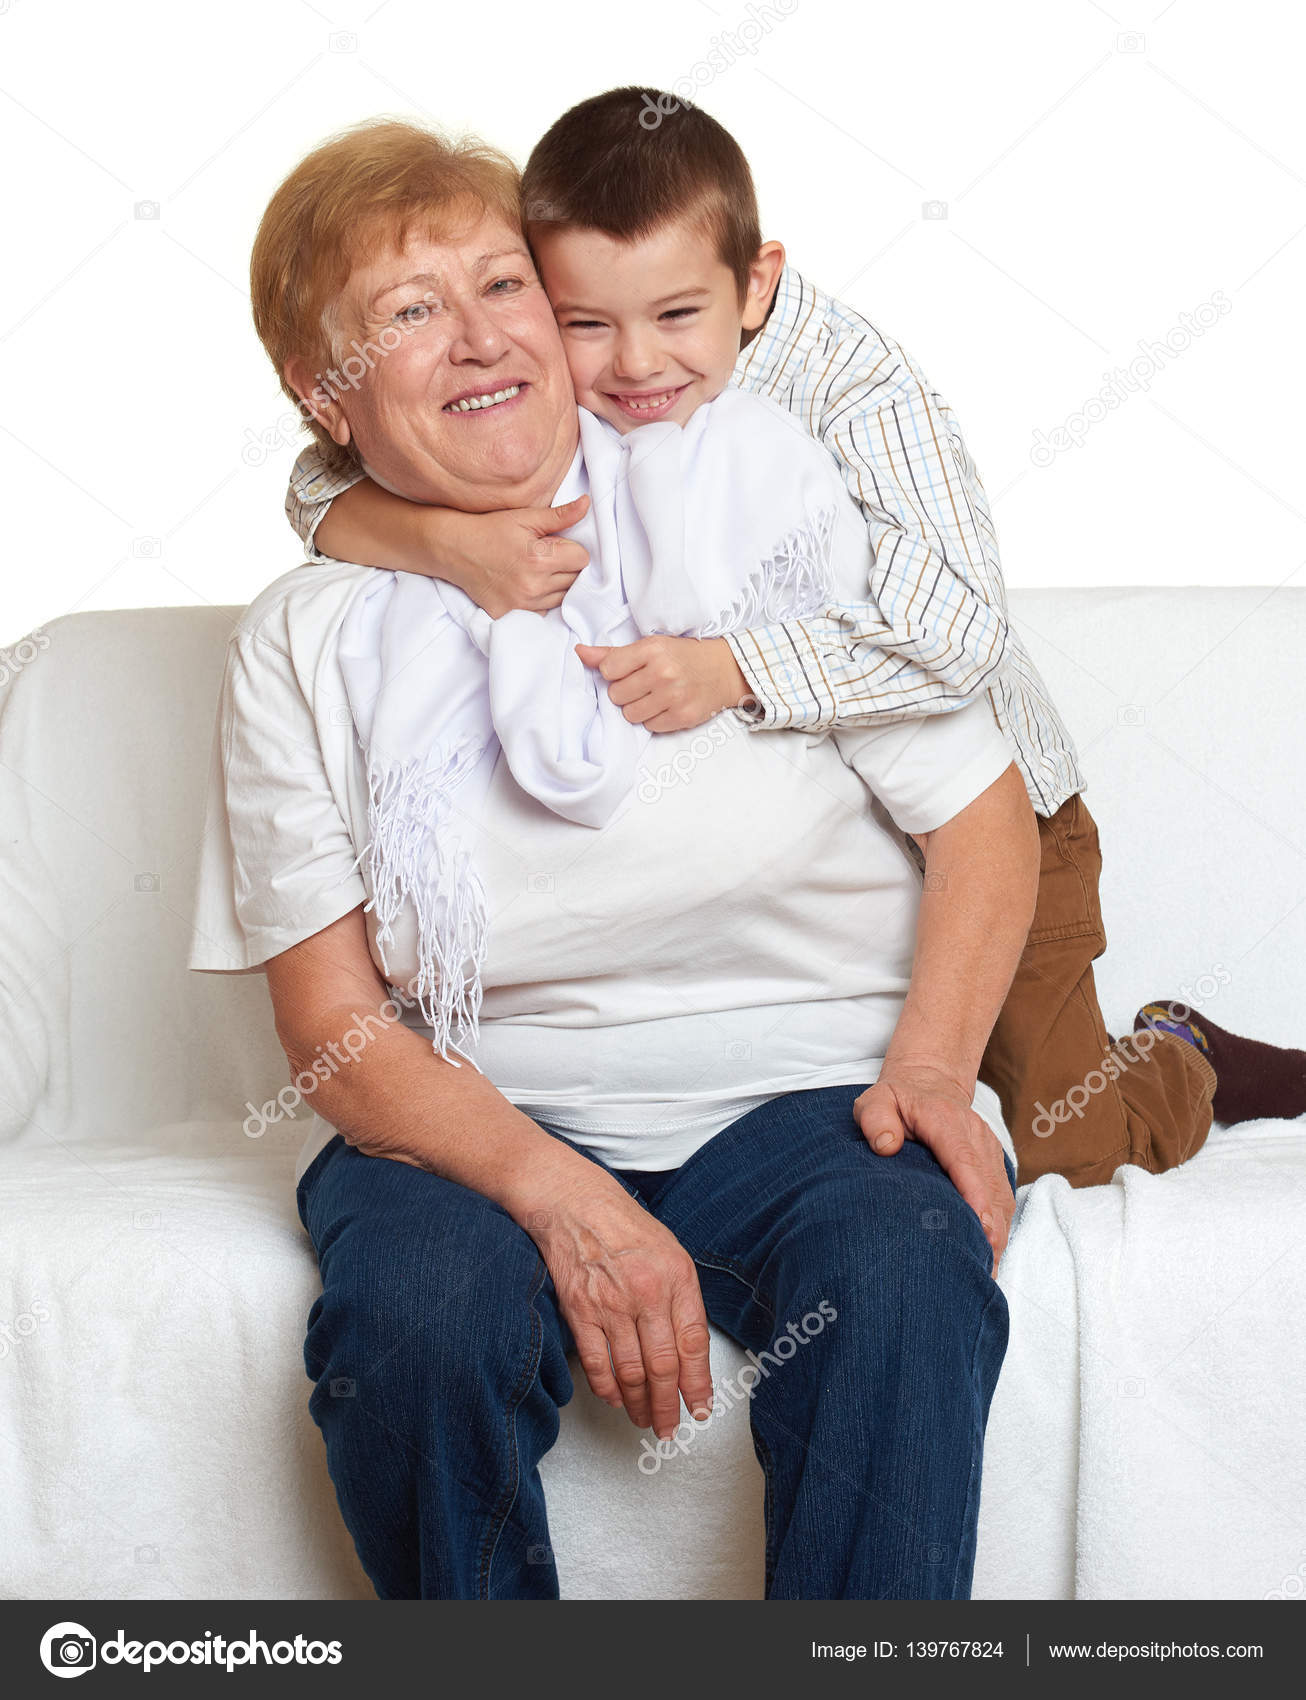 grandmother and grandchild family portrait on white background